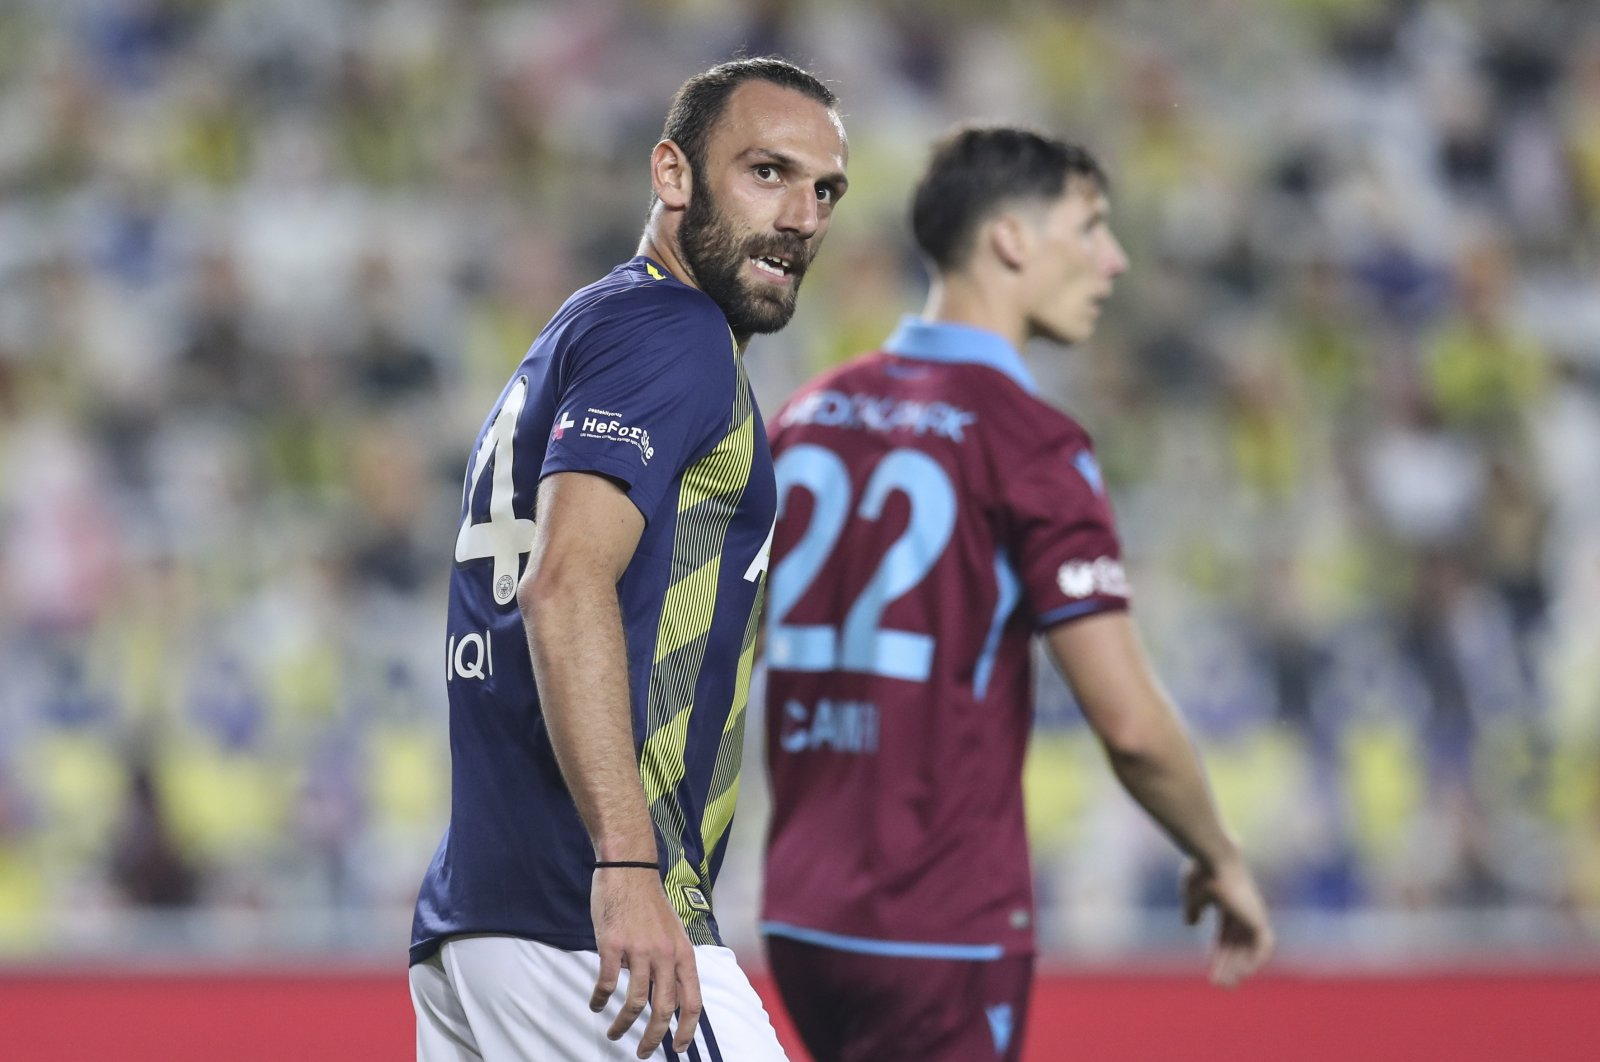 Former Fenerbahçe player Vedat Muriqi became the most expensive outward transfer in the Süper Lig after his move to Serie A side Lazio. (AA Photo)